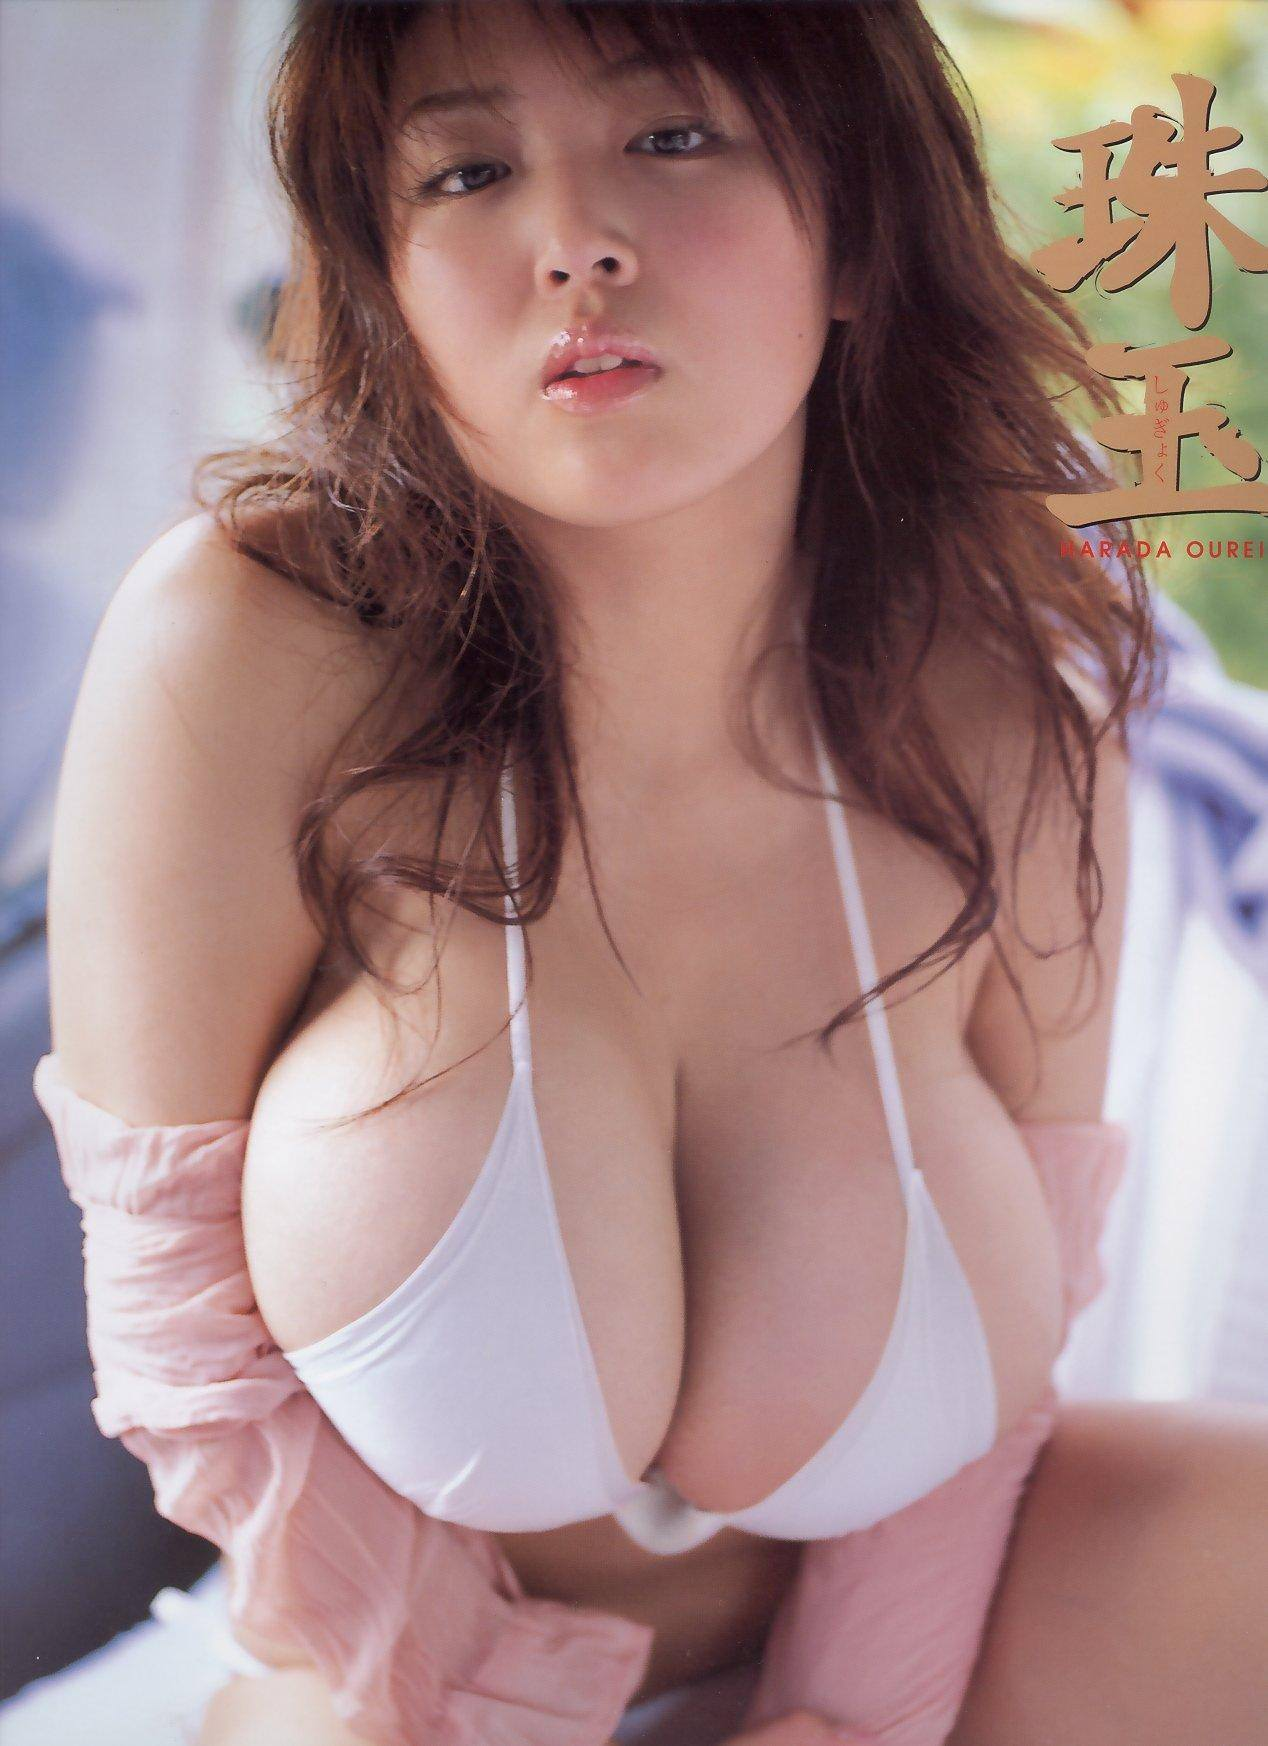 Agree, useful japanese girl busty ourei harada